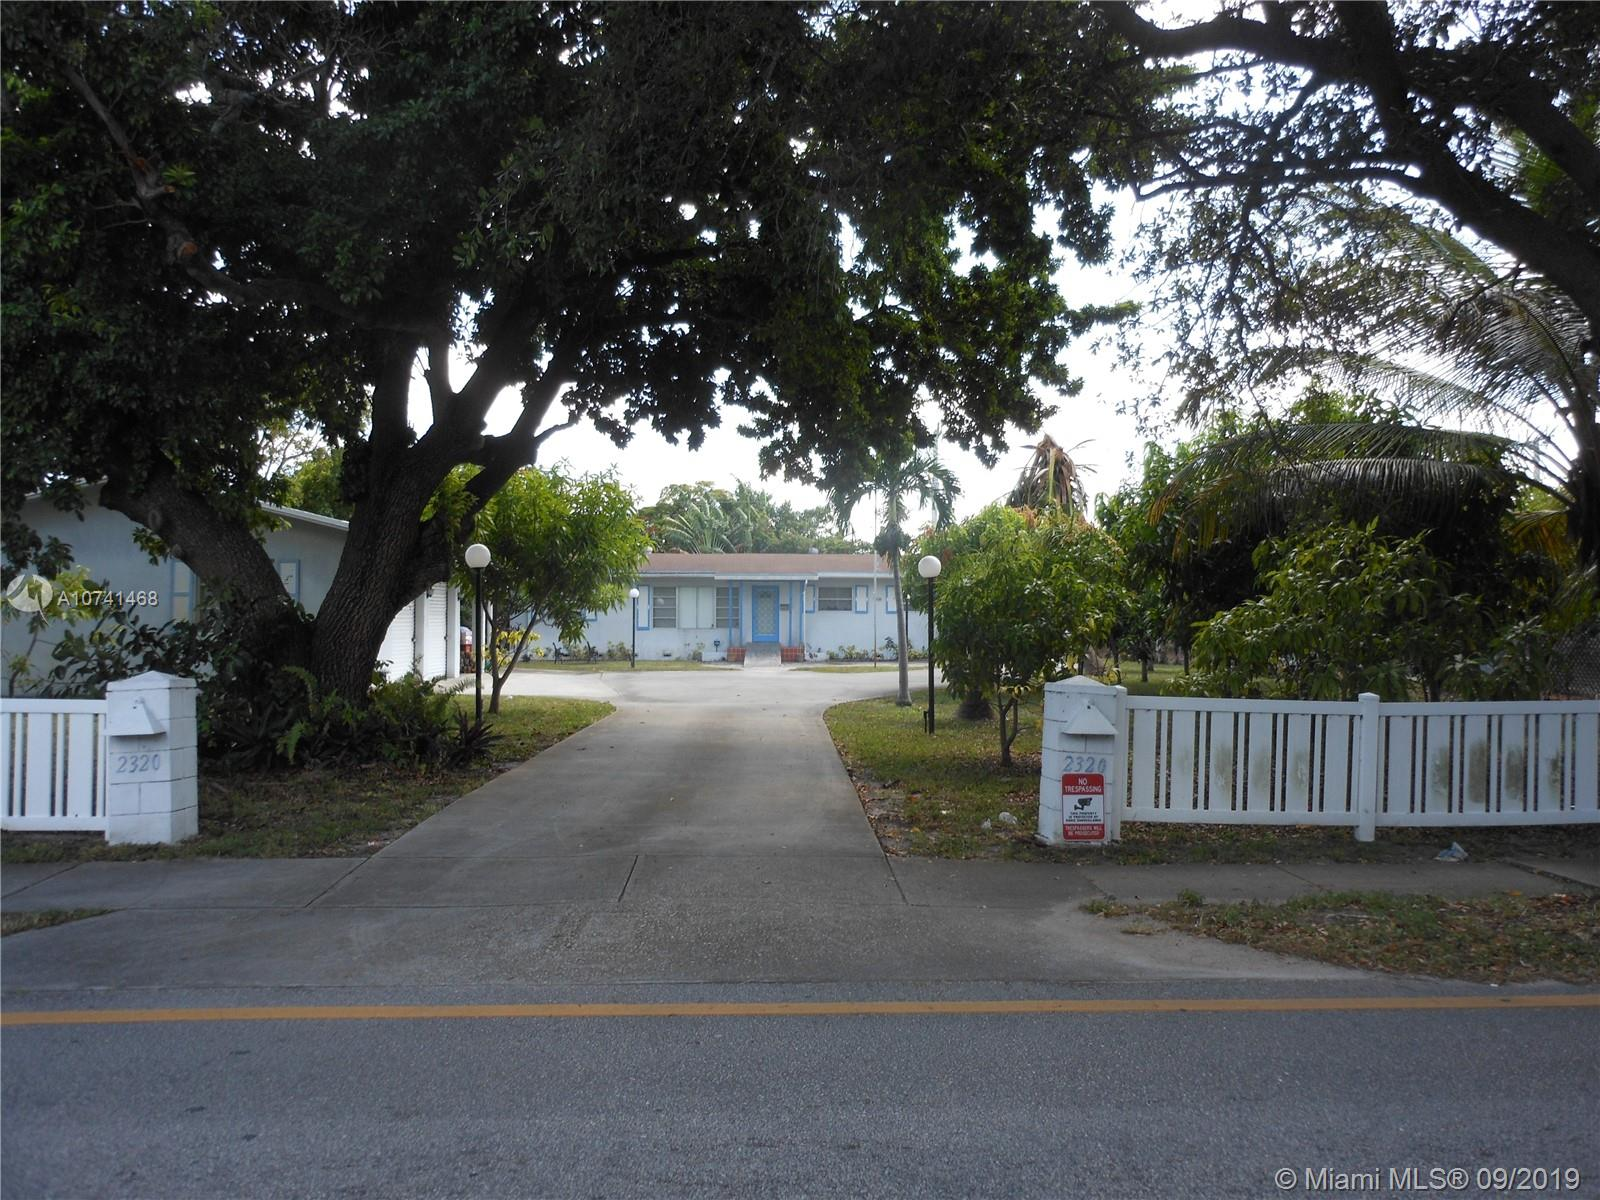 *****LAND FOR SALE 1/2 ACRE MULTI FAMILY NEGOTIABLE A MUCH SOUGHT AFTER DOUBLE LOT ***** DO NOT BOTHER TENANTS***